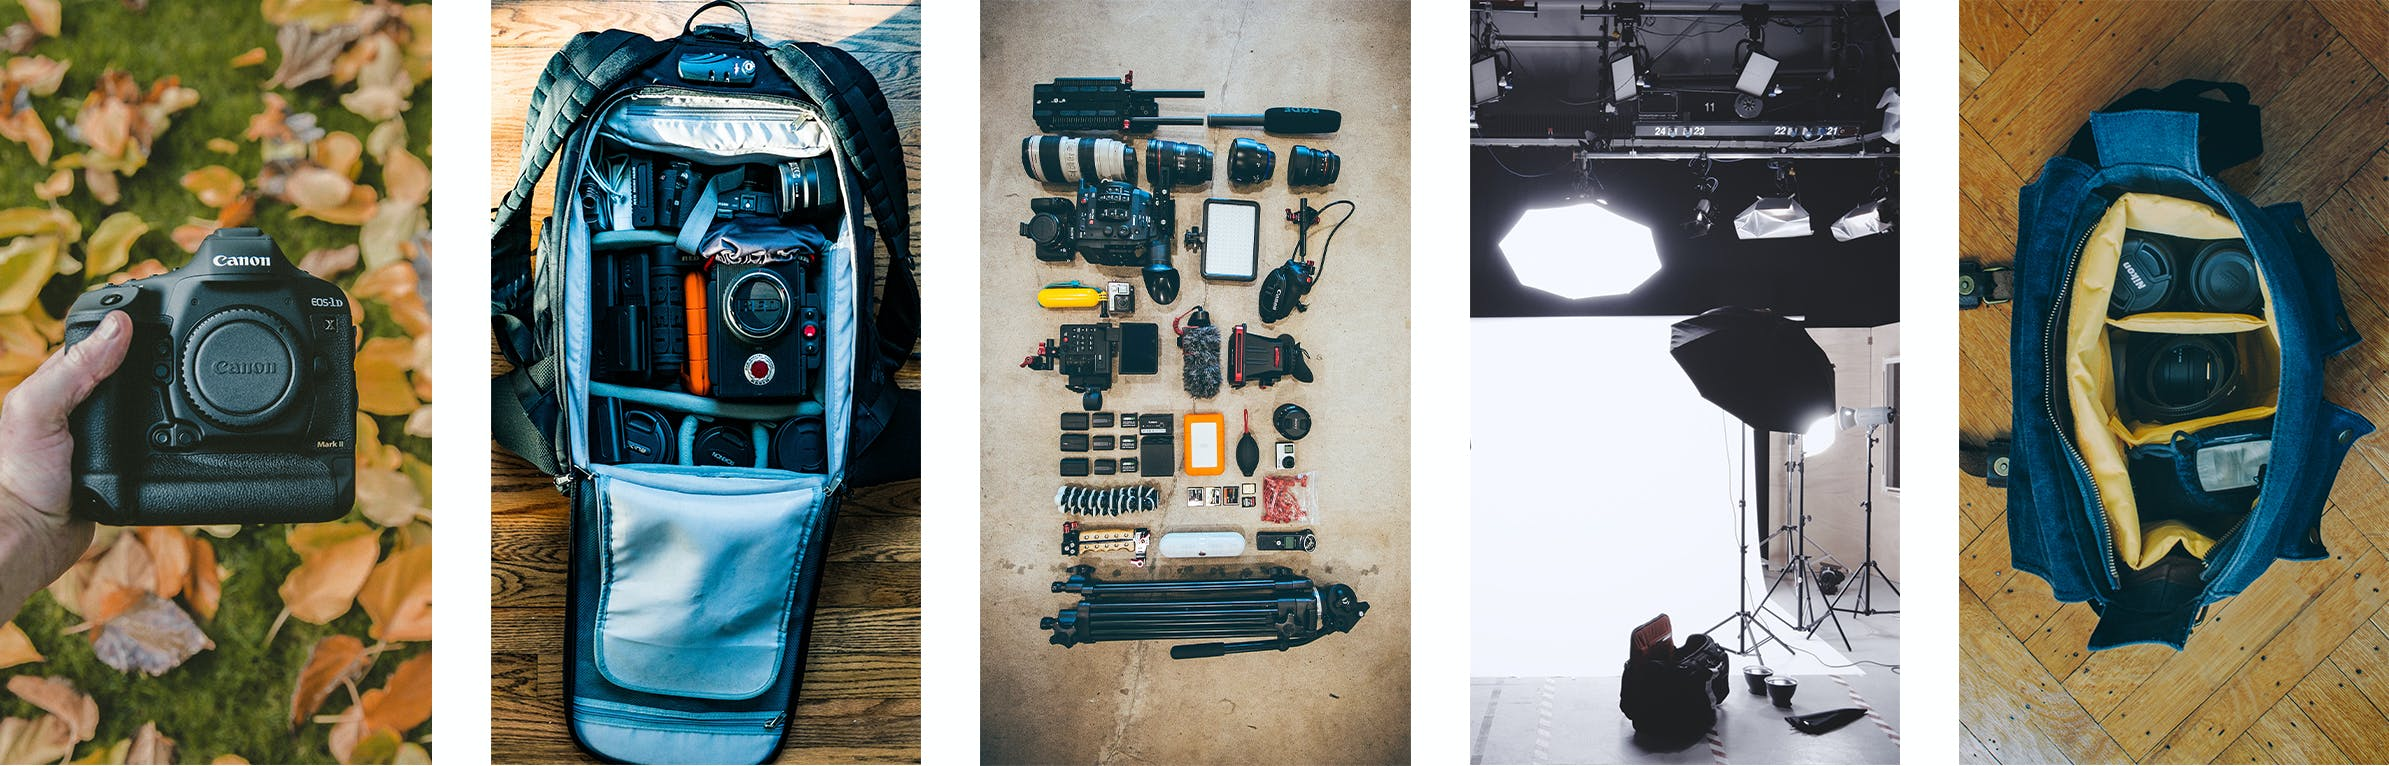 Share photos of your photography gear on Instagram Stories to grow your photography business